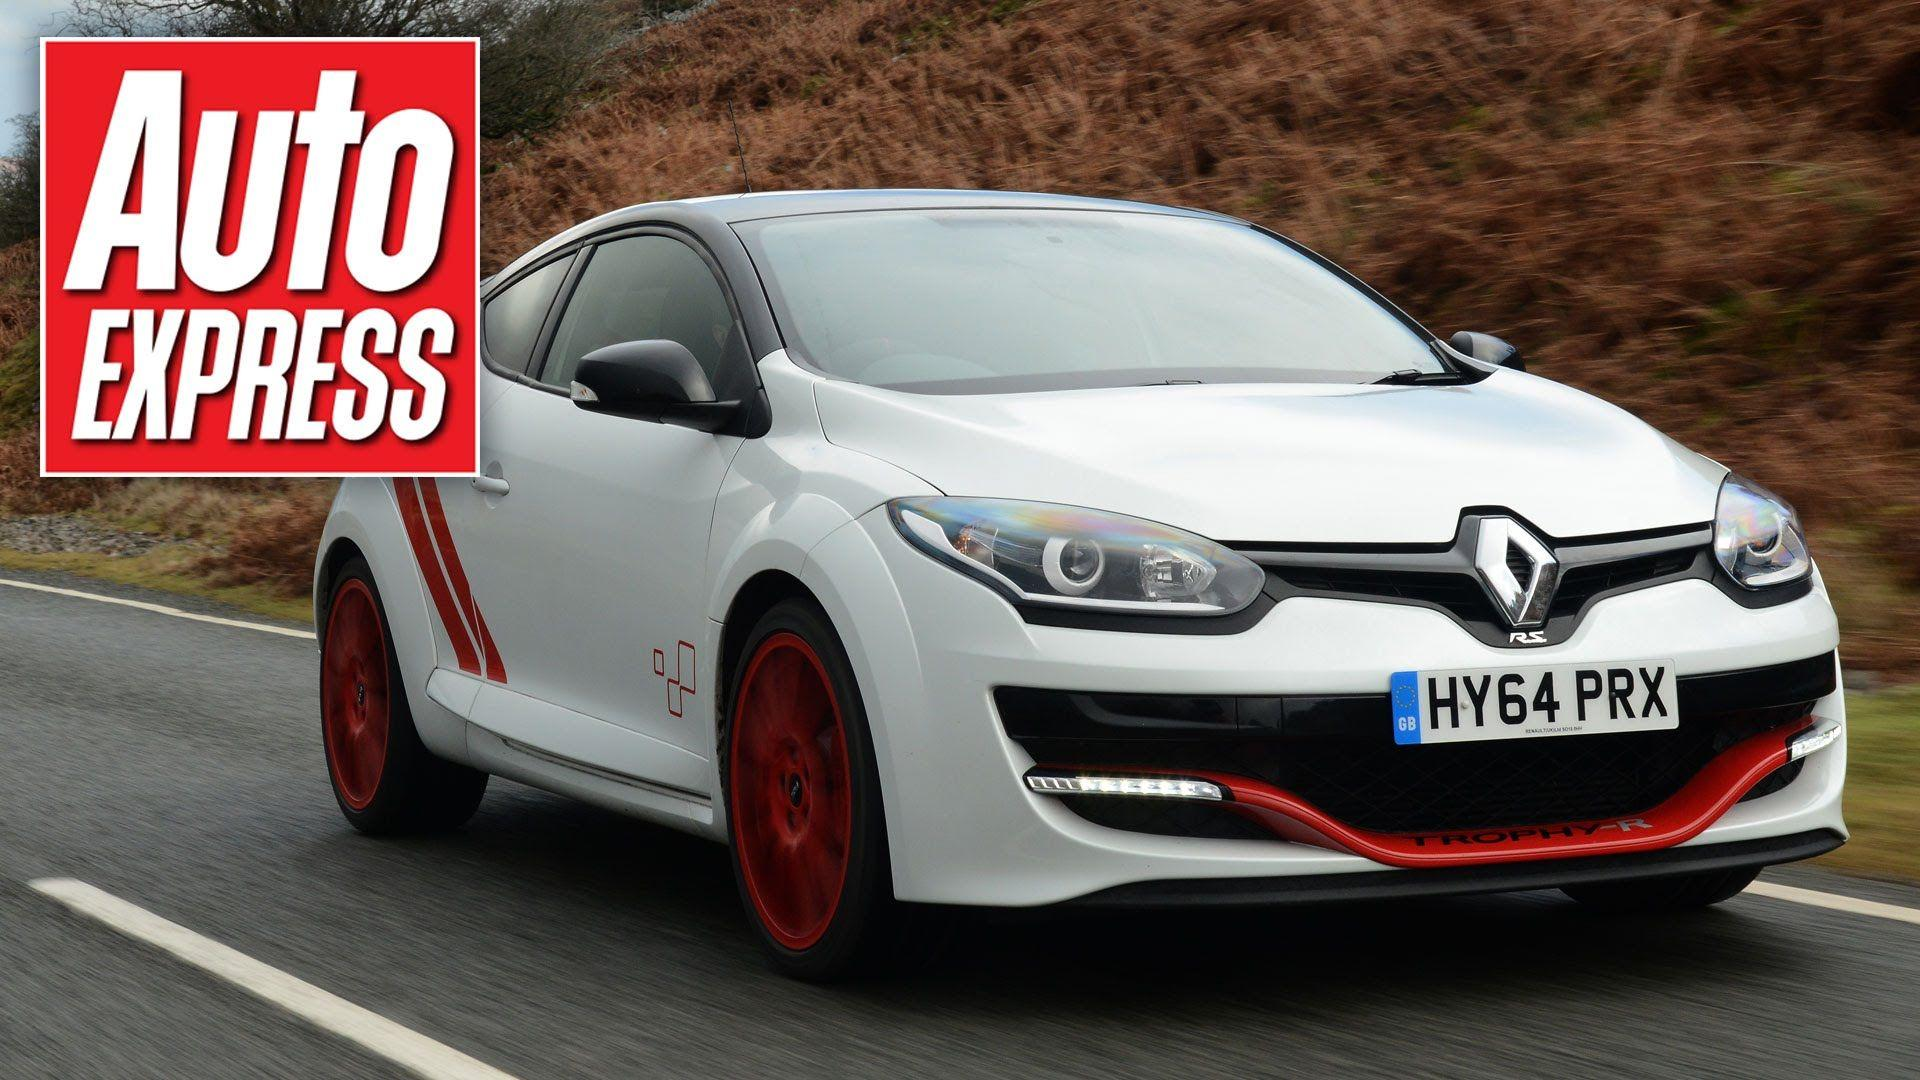 Renaultsport Megane 275 Trophy R review